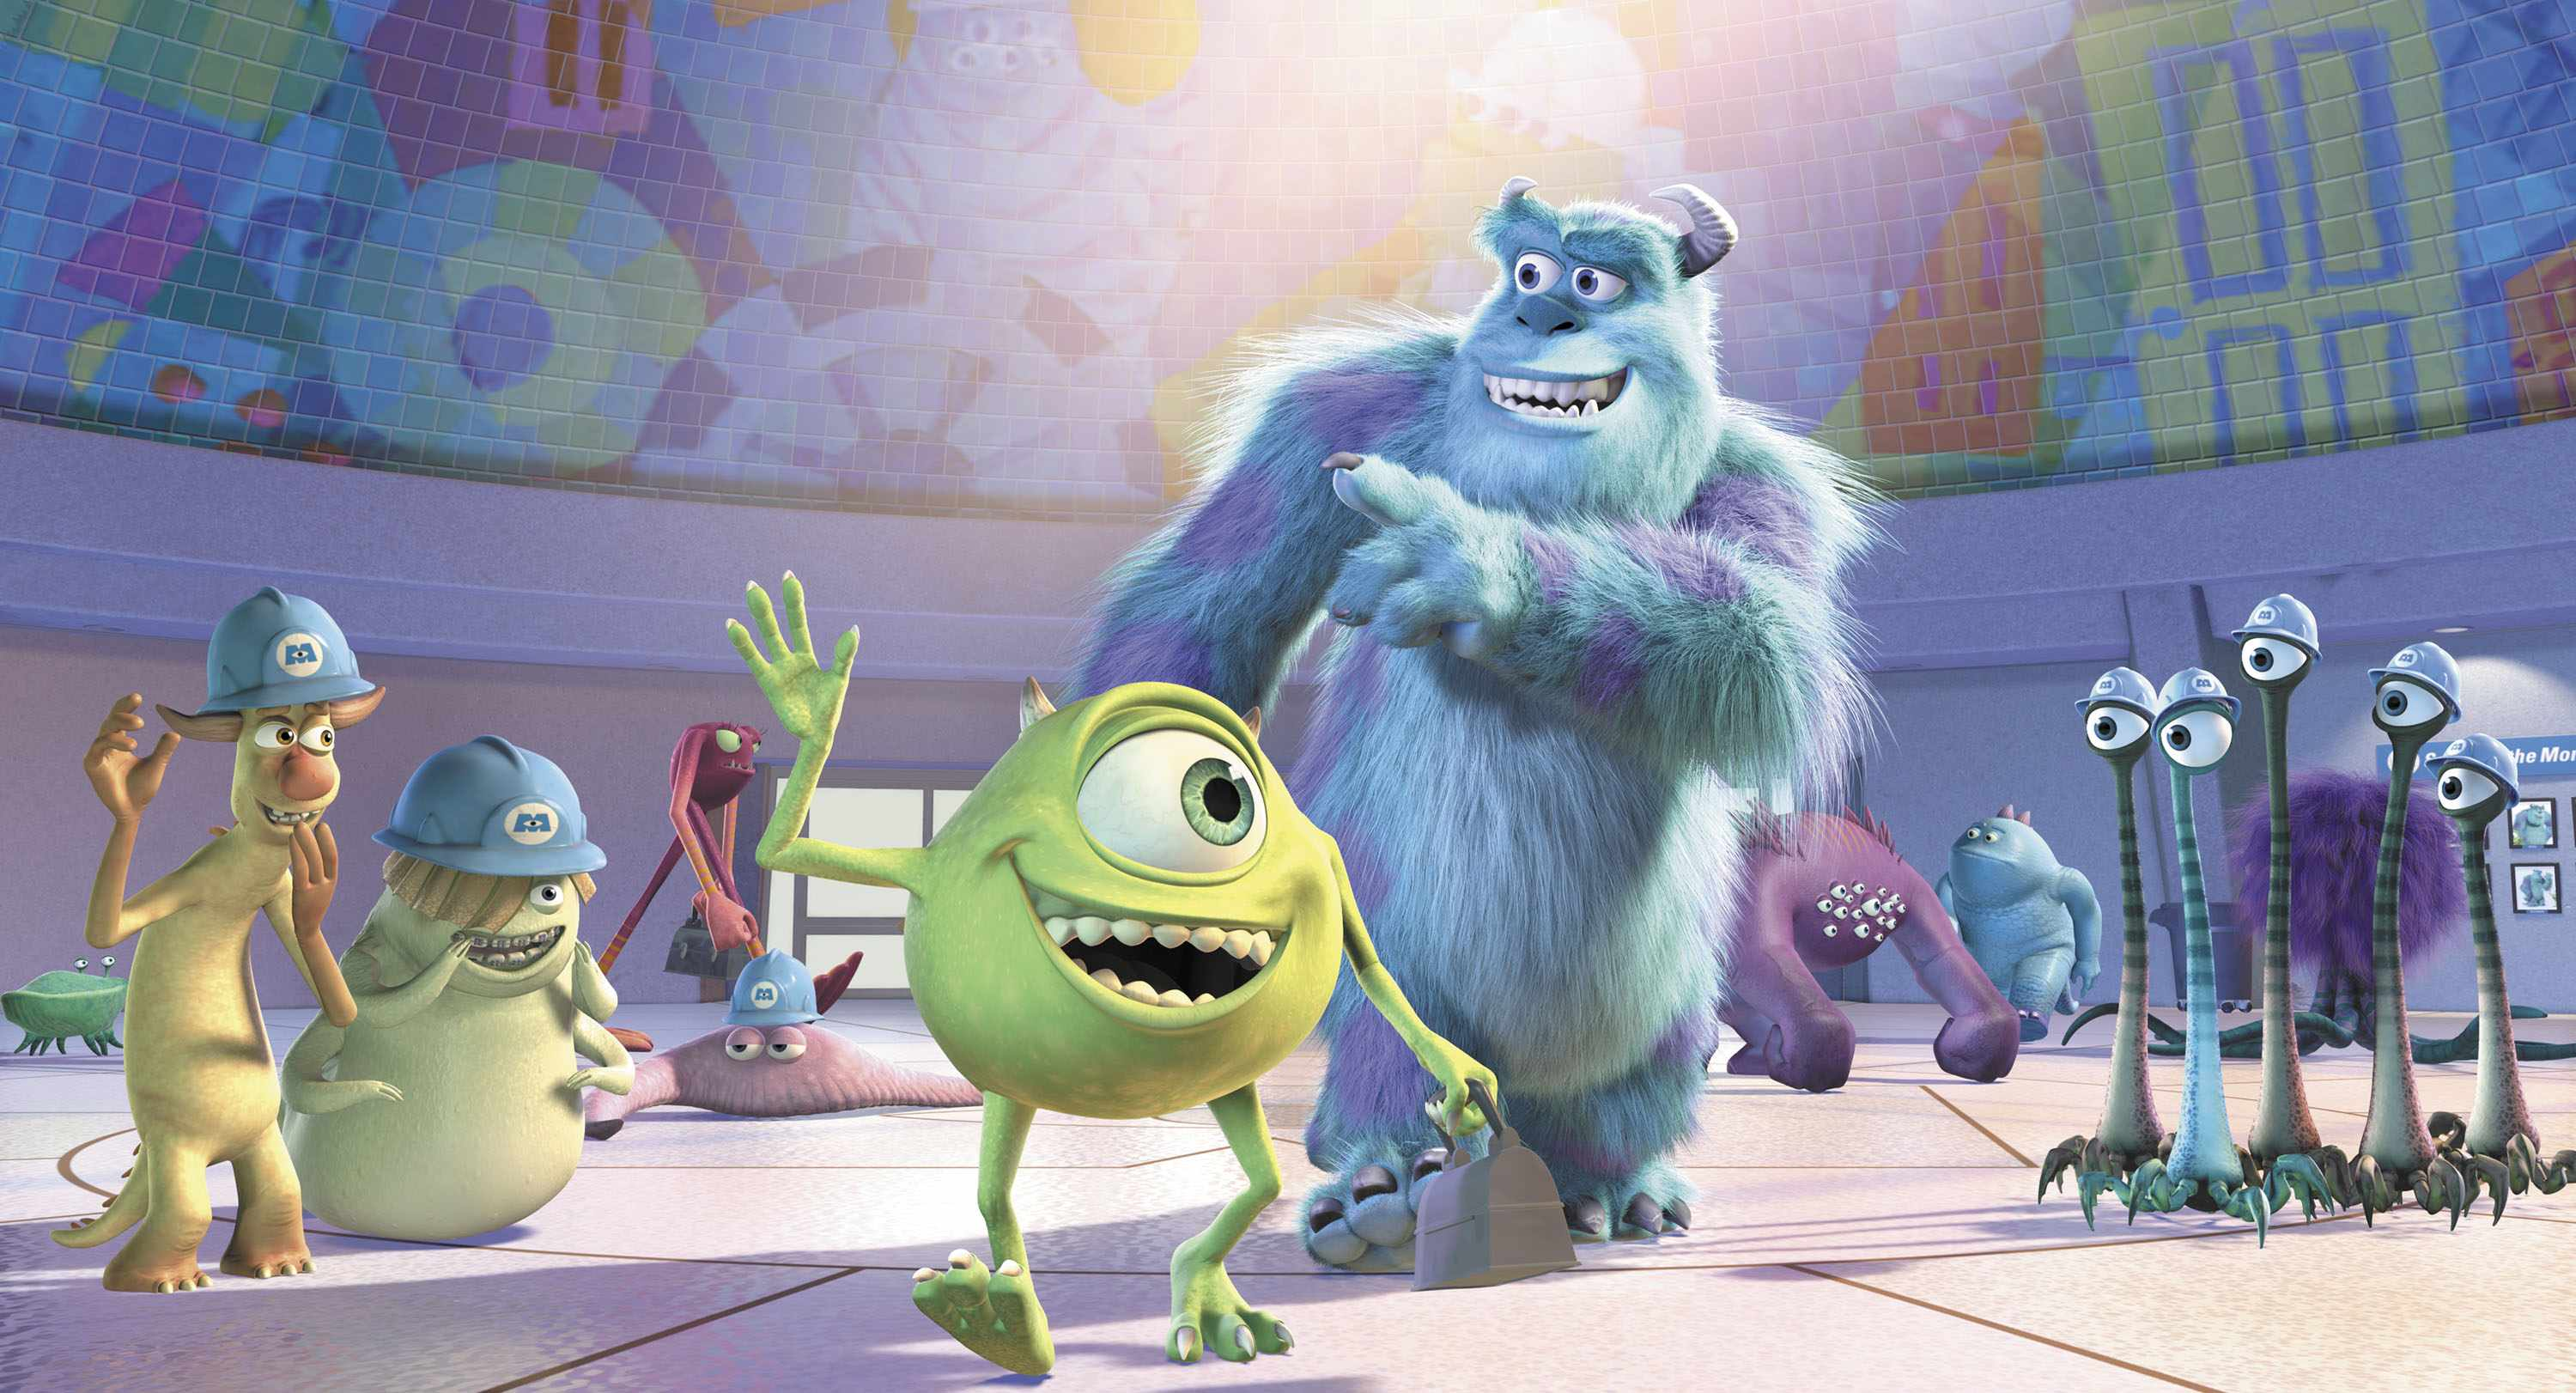 Mike, Sulley, Monsters. Inc (Sky/Disney/Pixar)